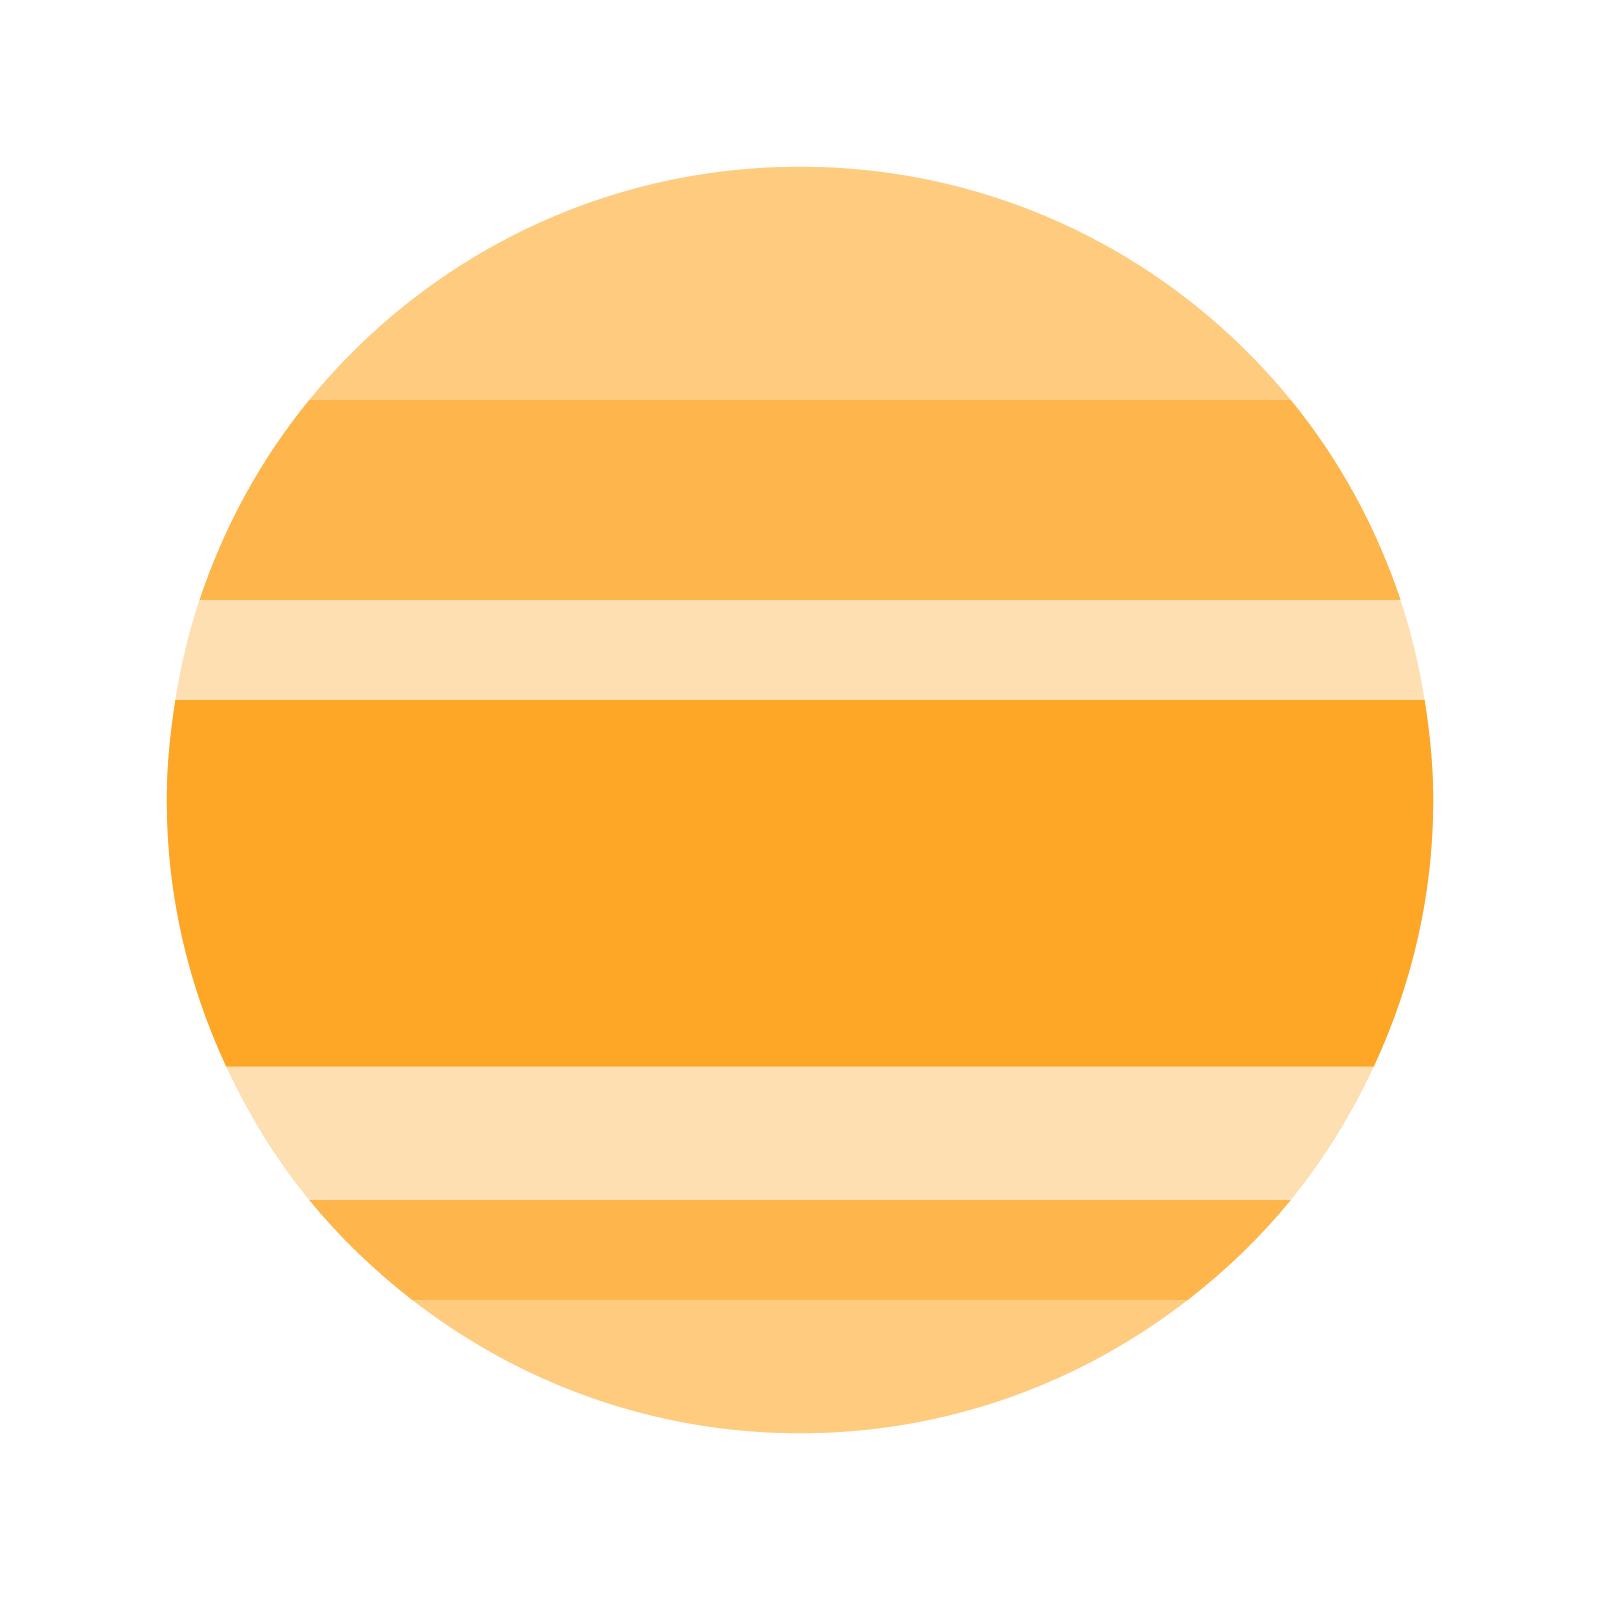 Venus planet png. Icon free download and